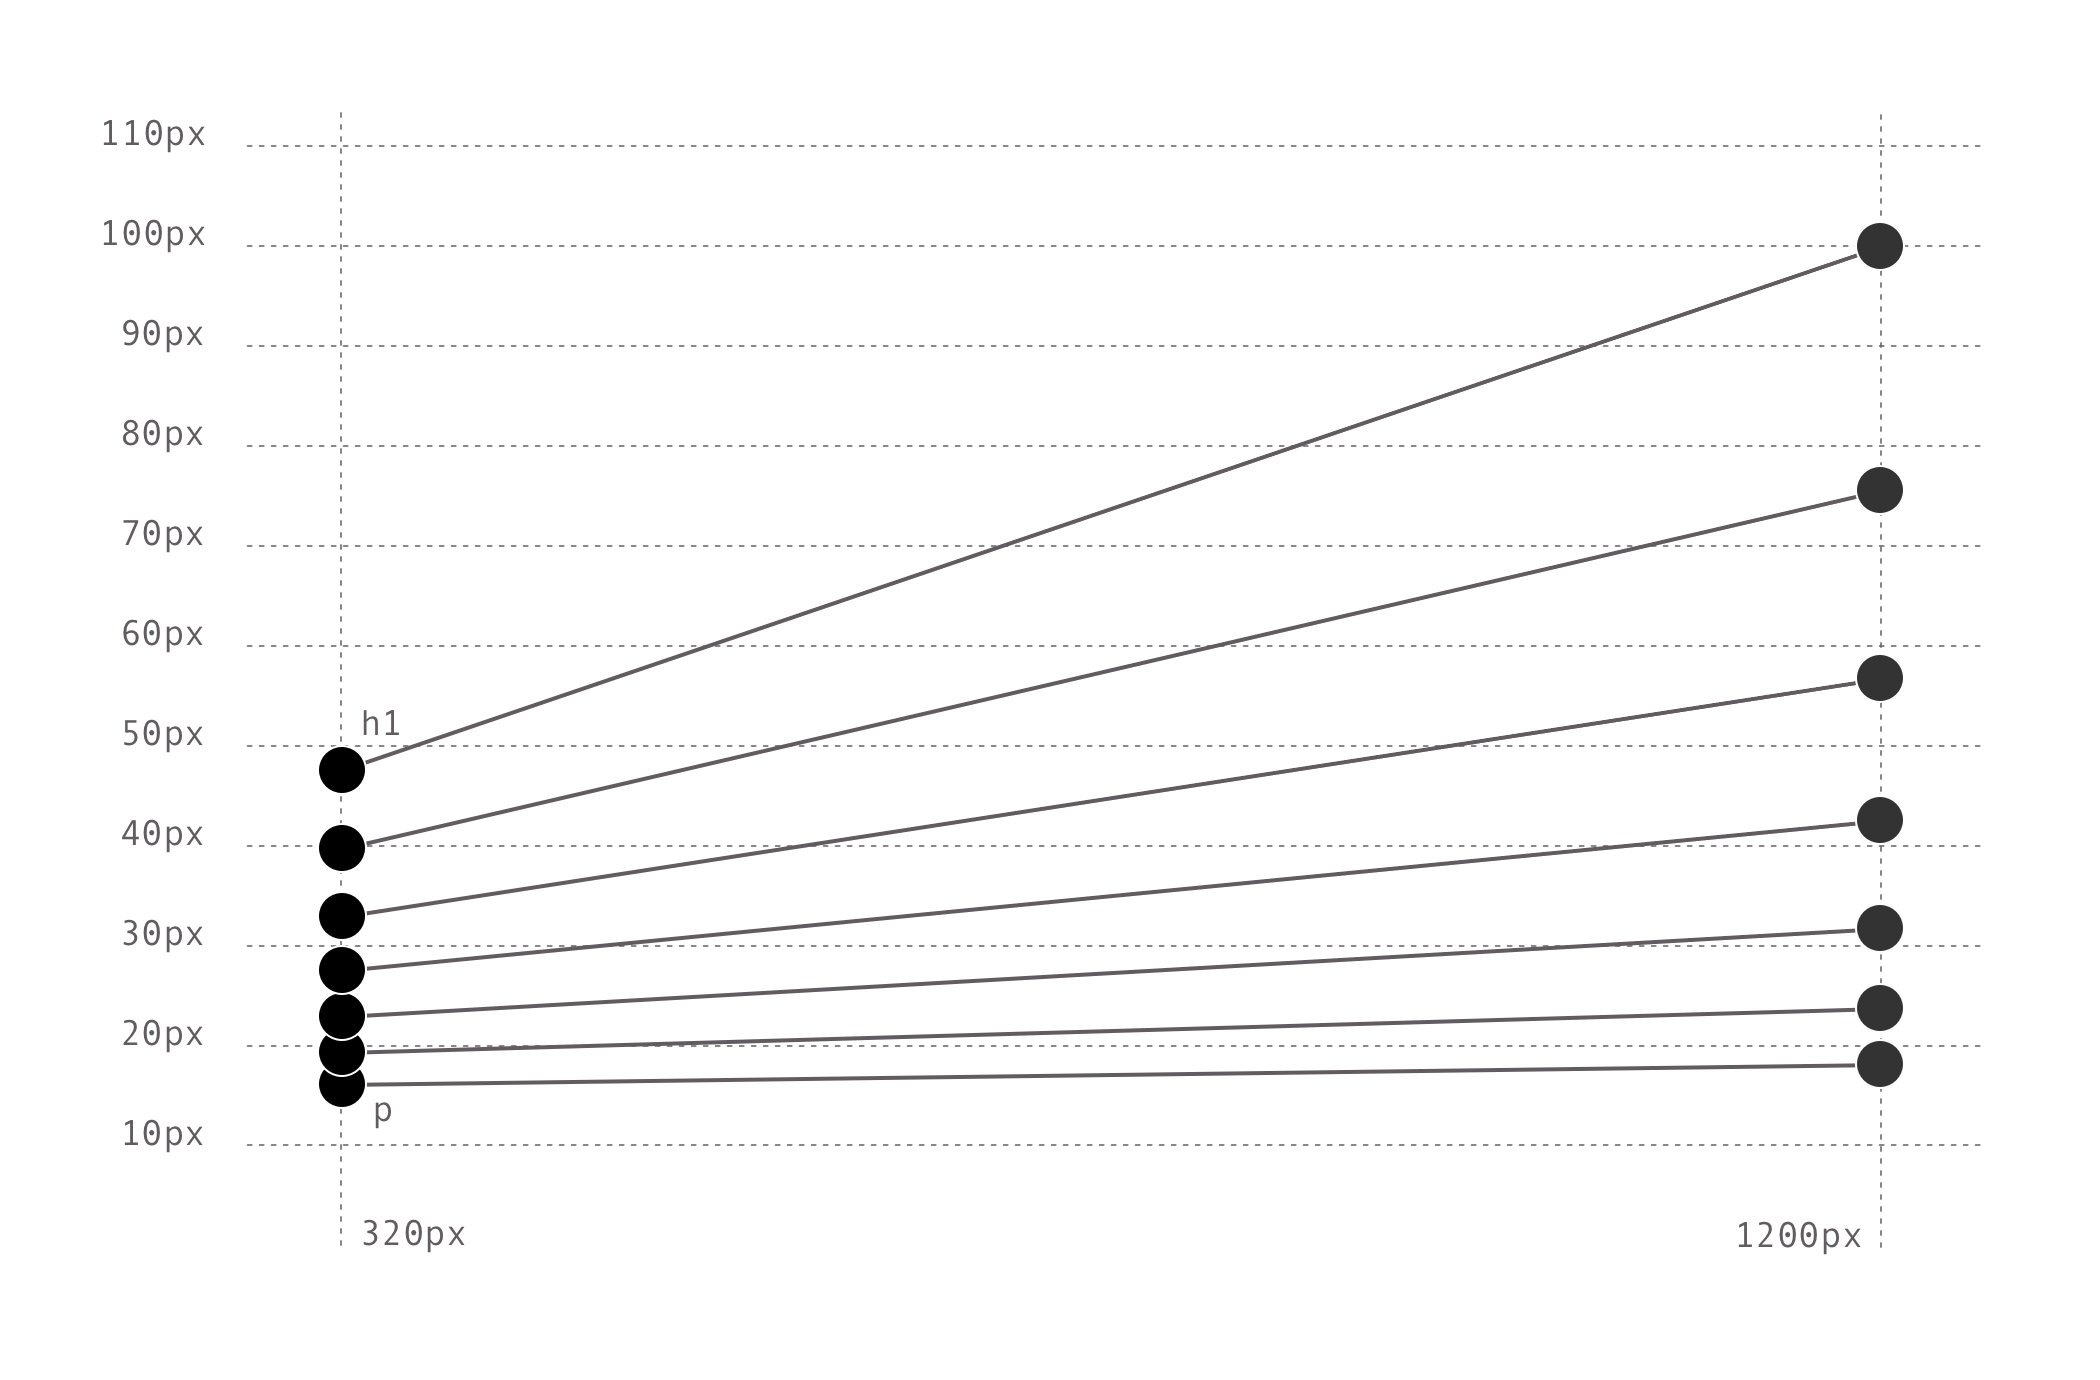 Chart showing the sizes and their interpolation from a 320px viewport to a 1200px viewport.